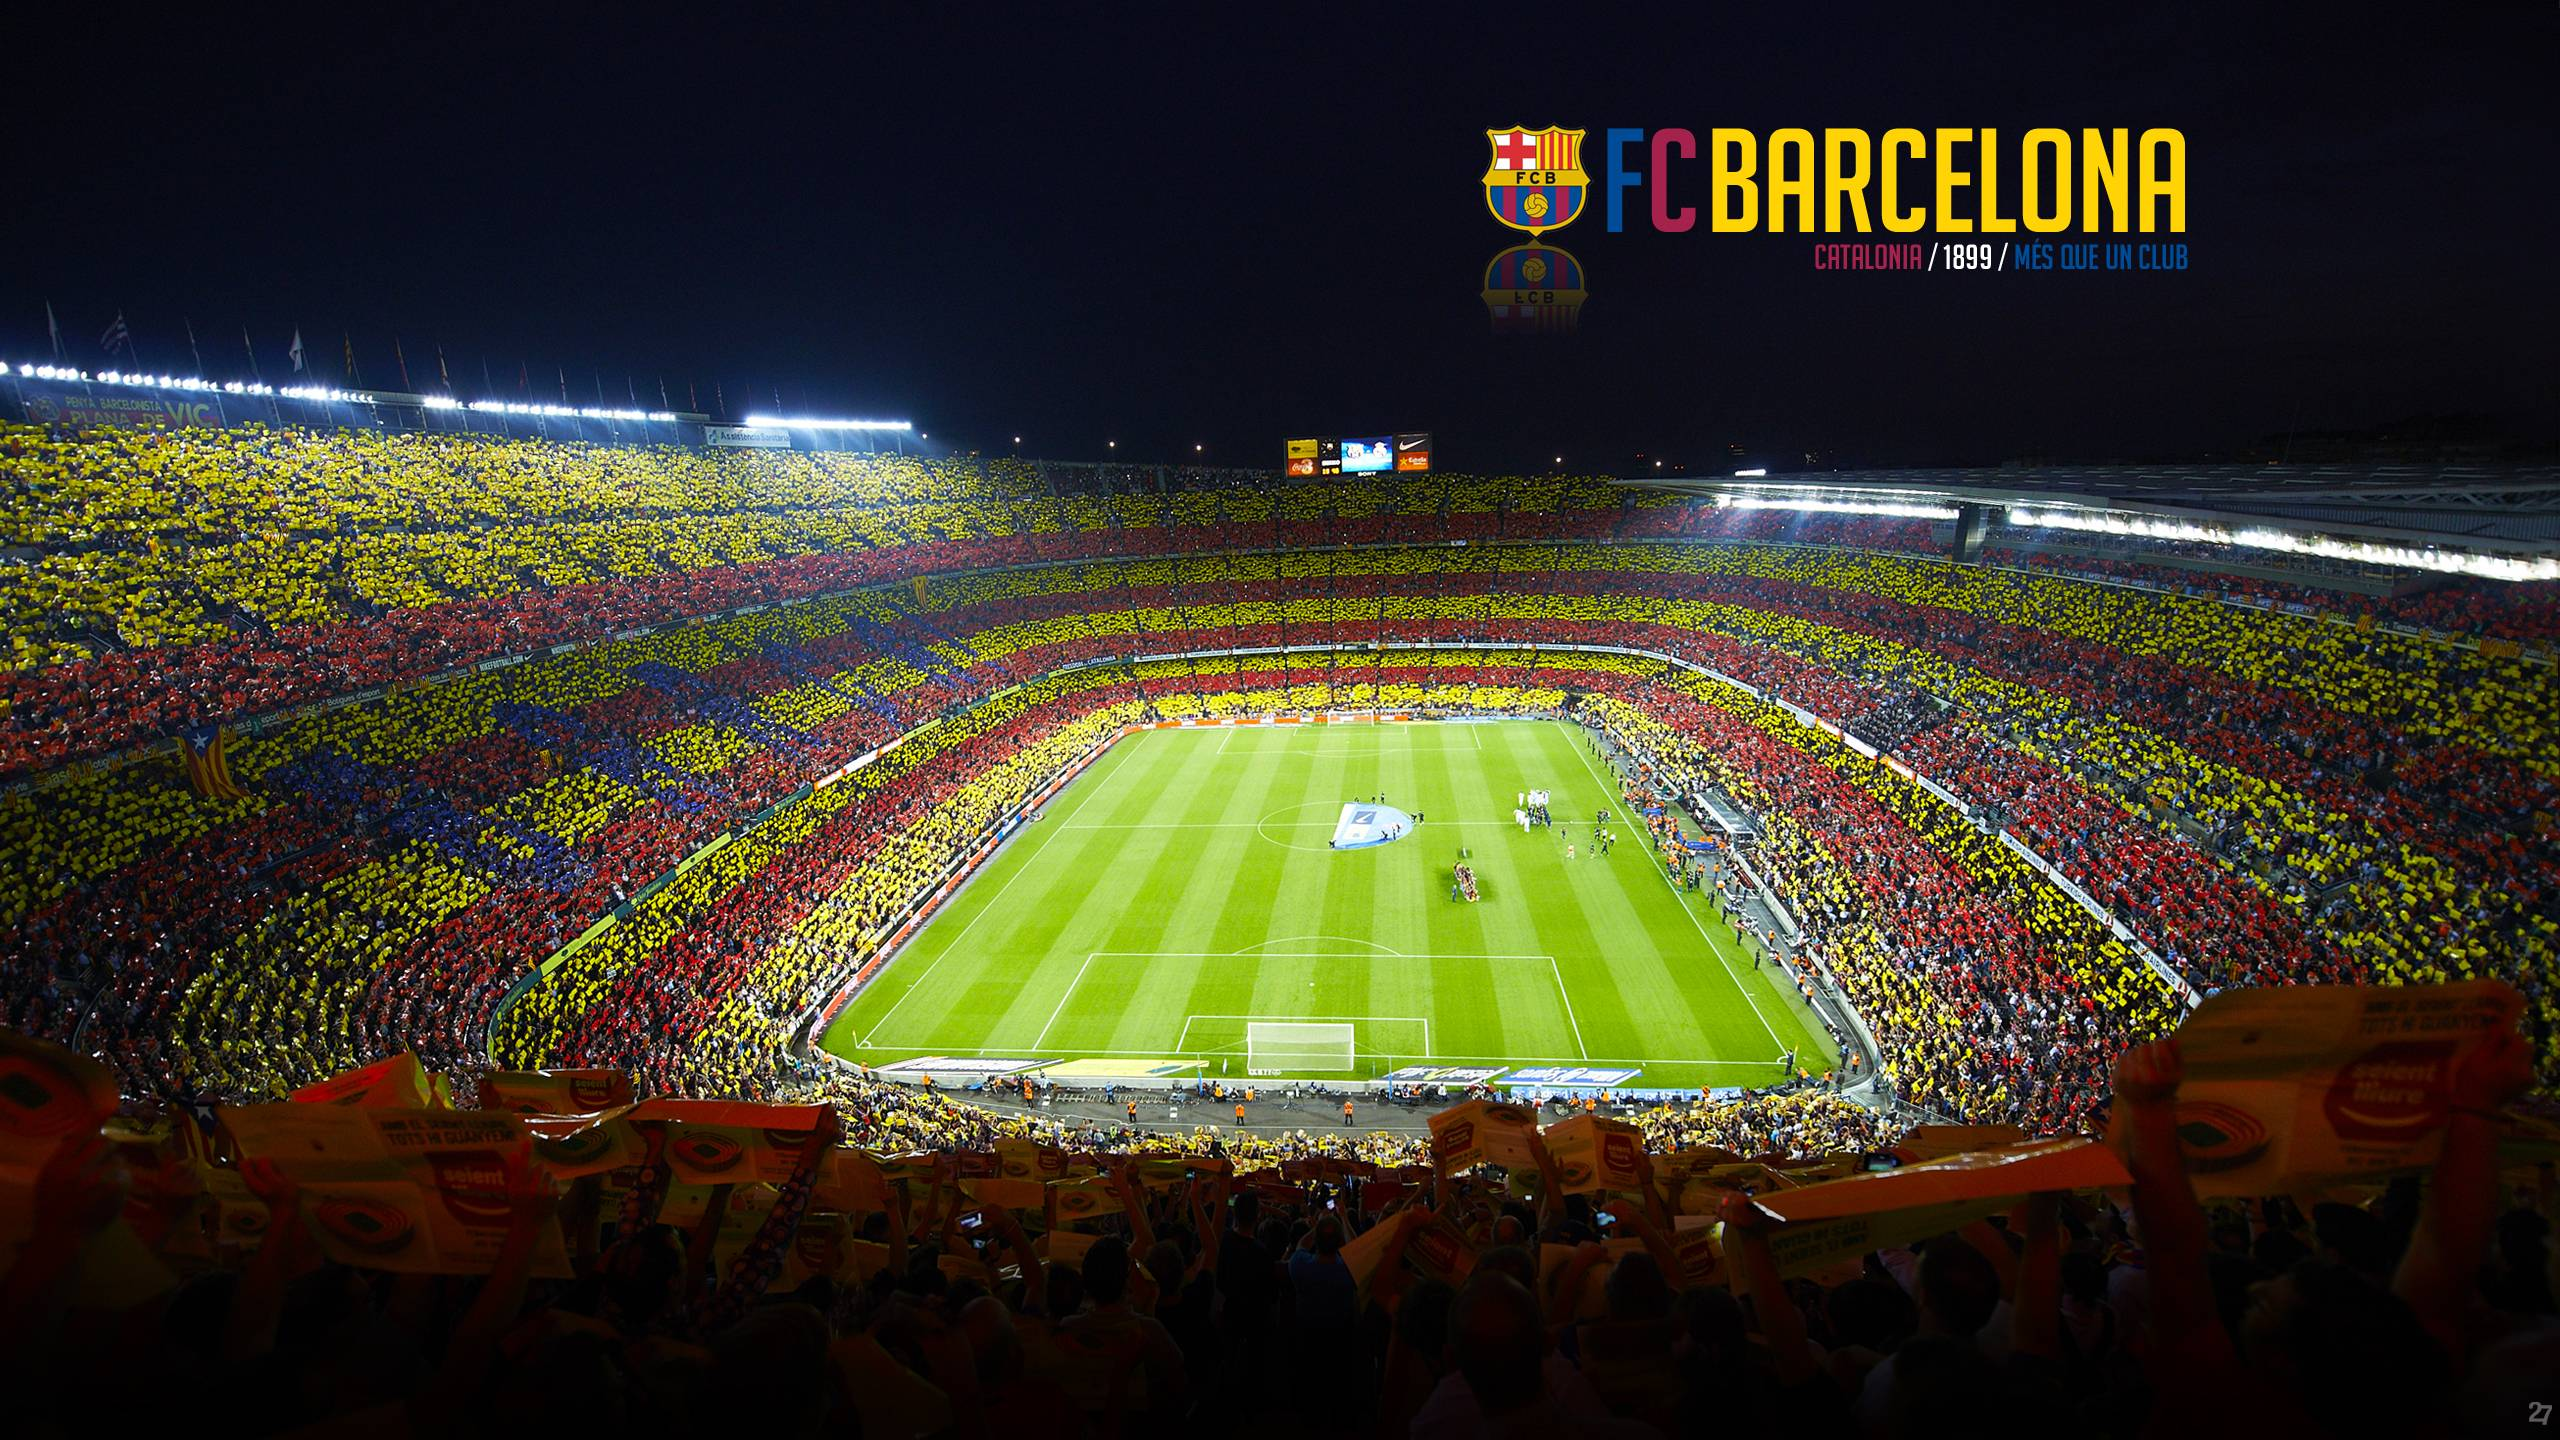 Camp Nou Wallpapers 2560x1440